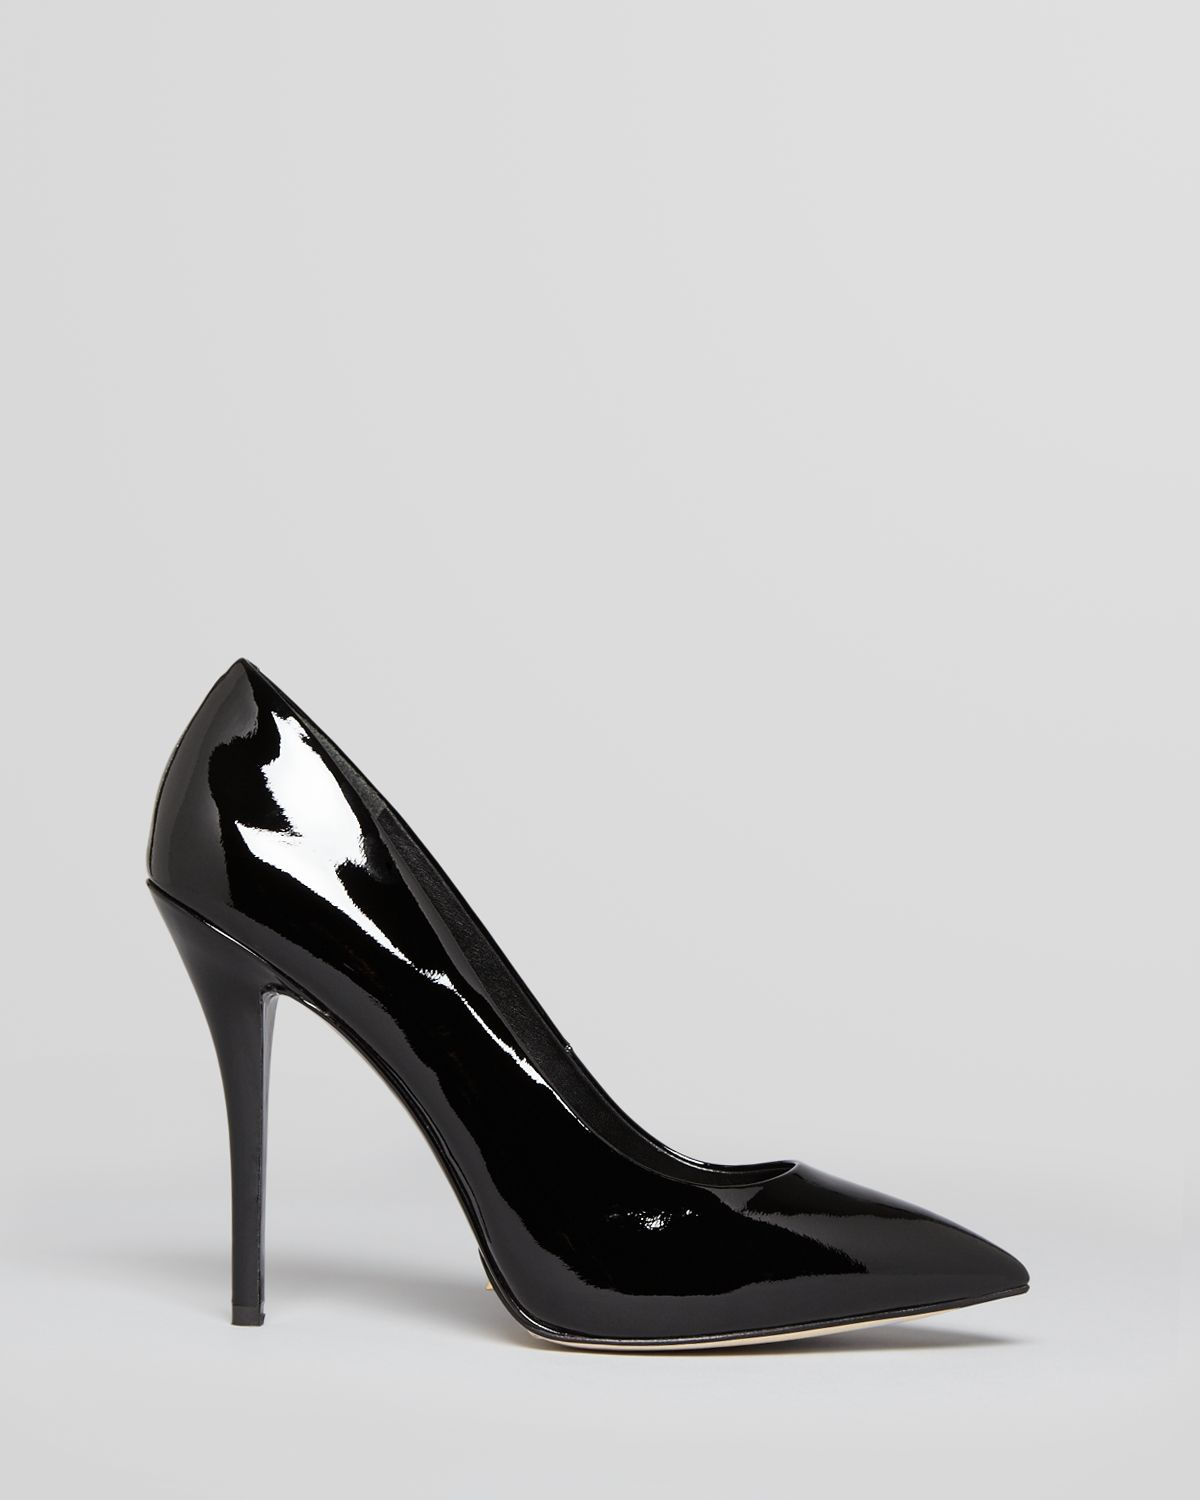 B Brian Atwood Embellished Platform Pumps low price for sale buy cheap comfortable buy cheap low shipping aXygu2rqB